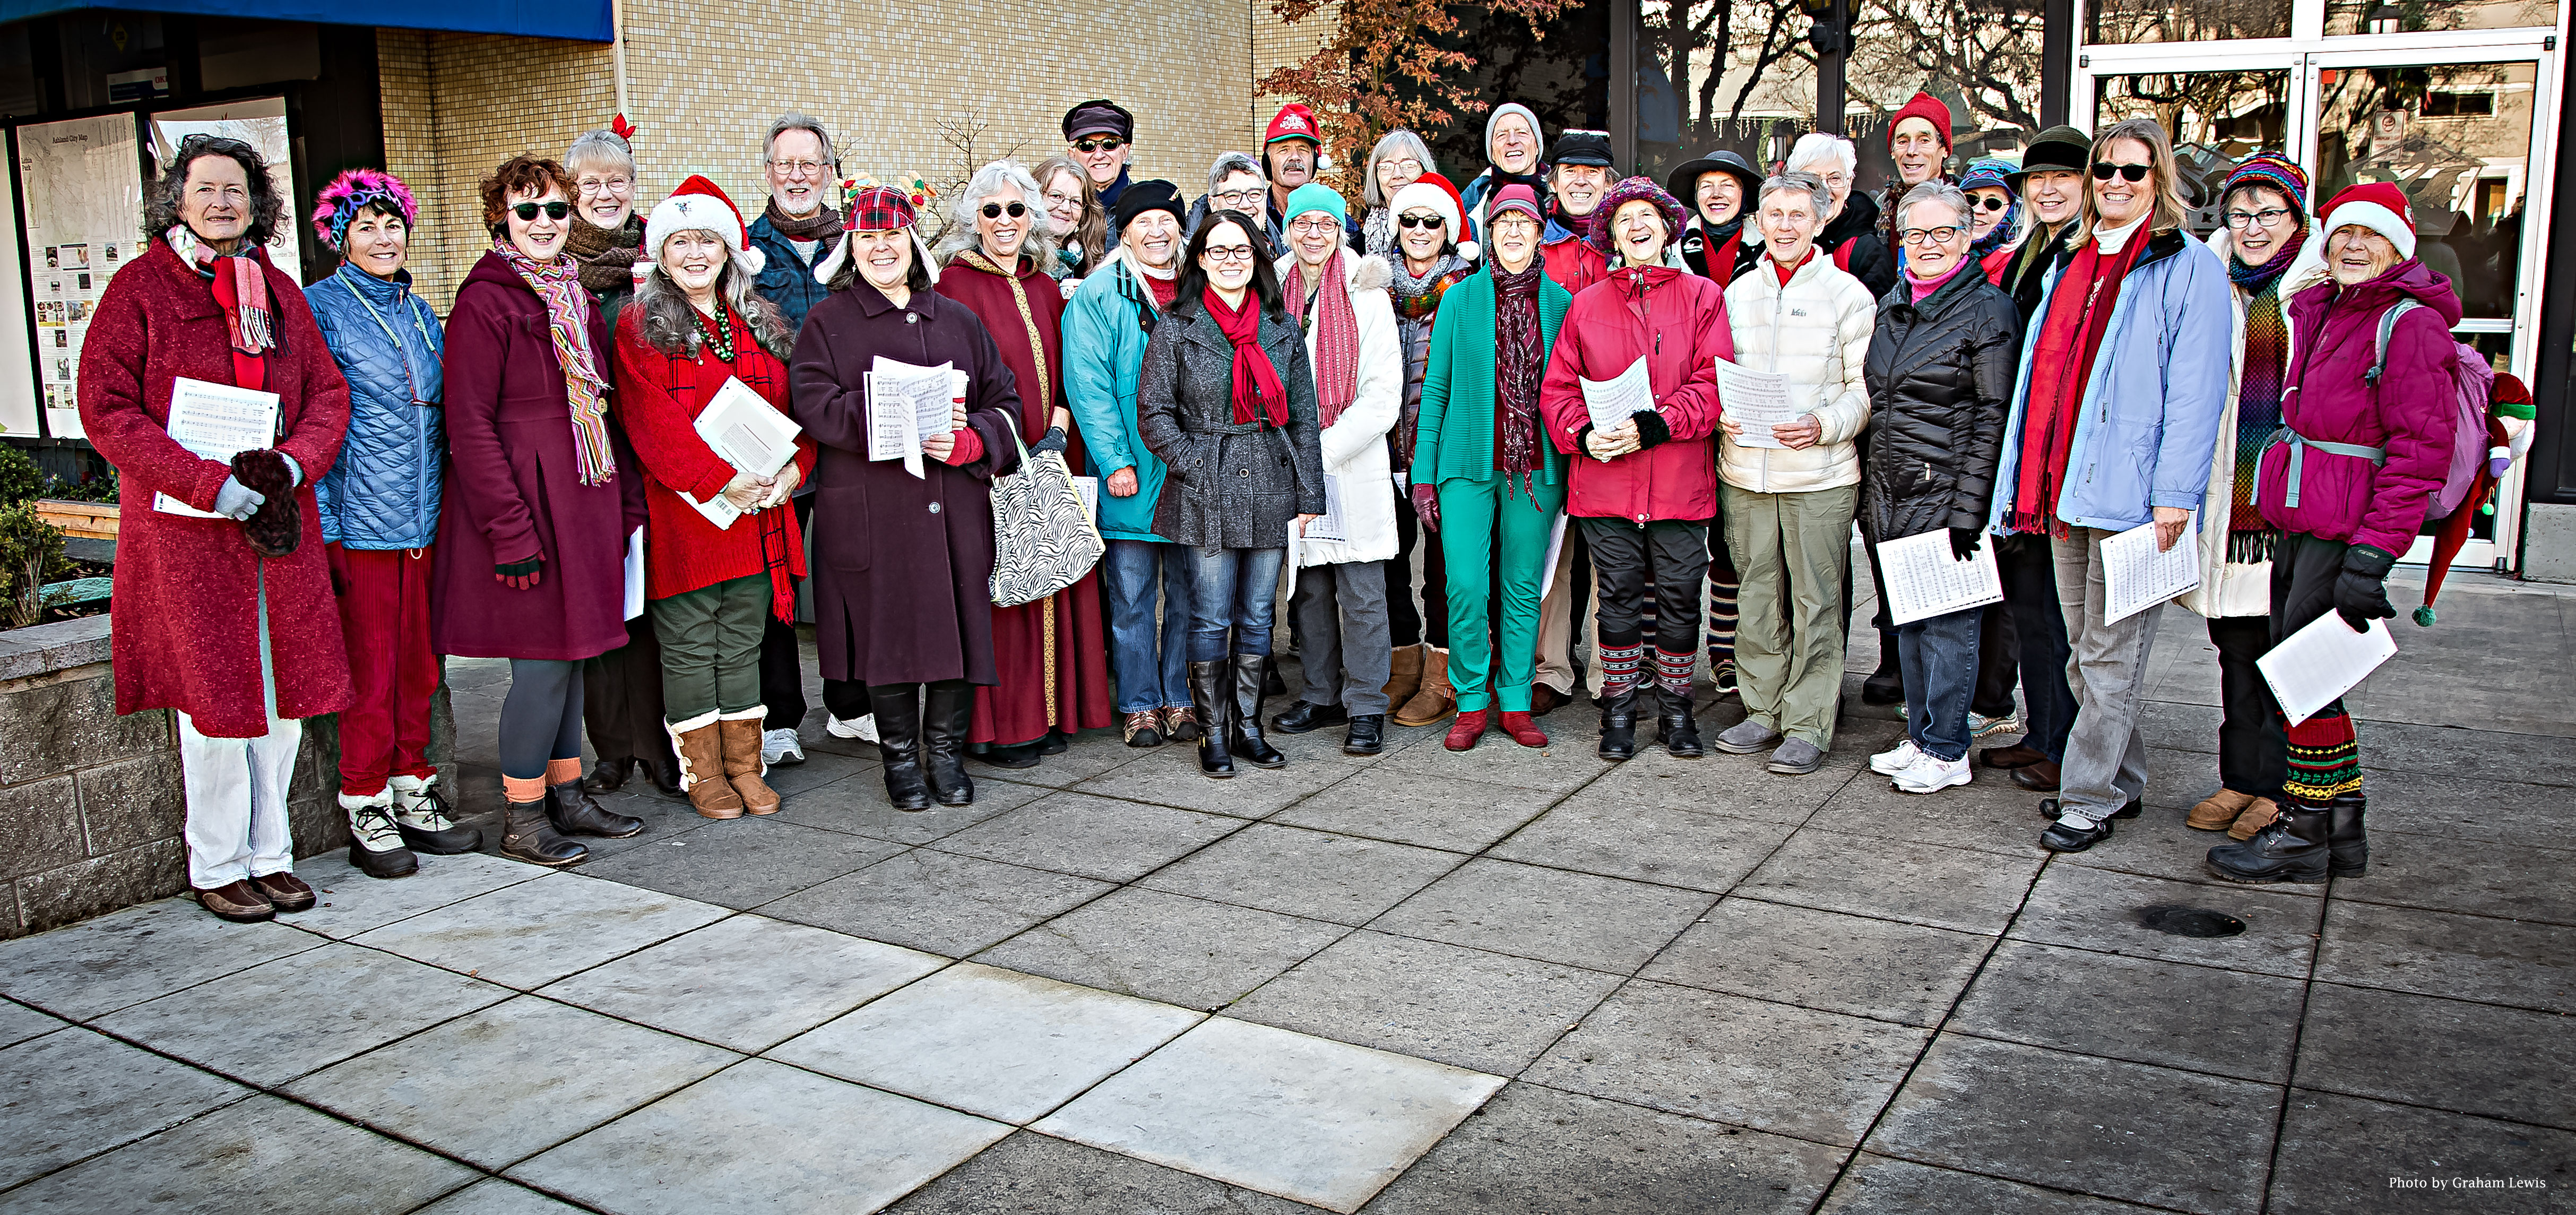 Caroling in Downtown Ashland, Dec. 16, 2017